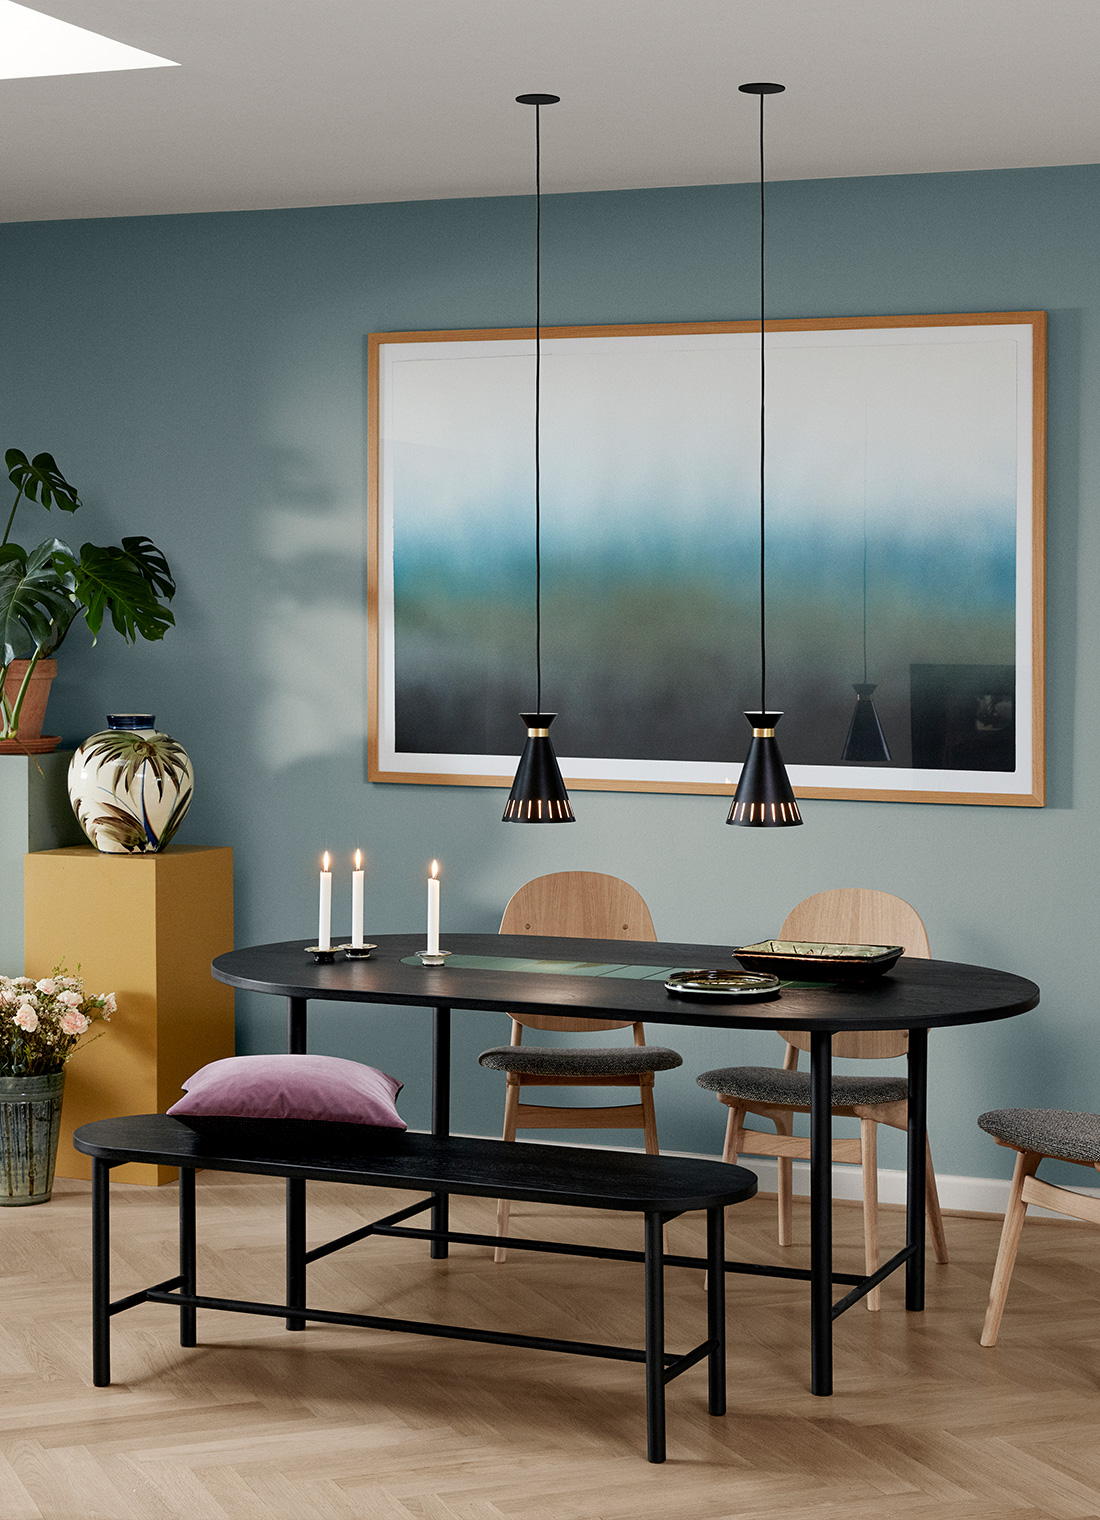 Cone pendant in diningroom setting